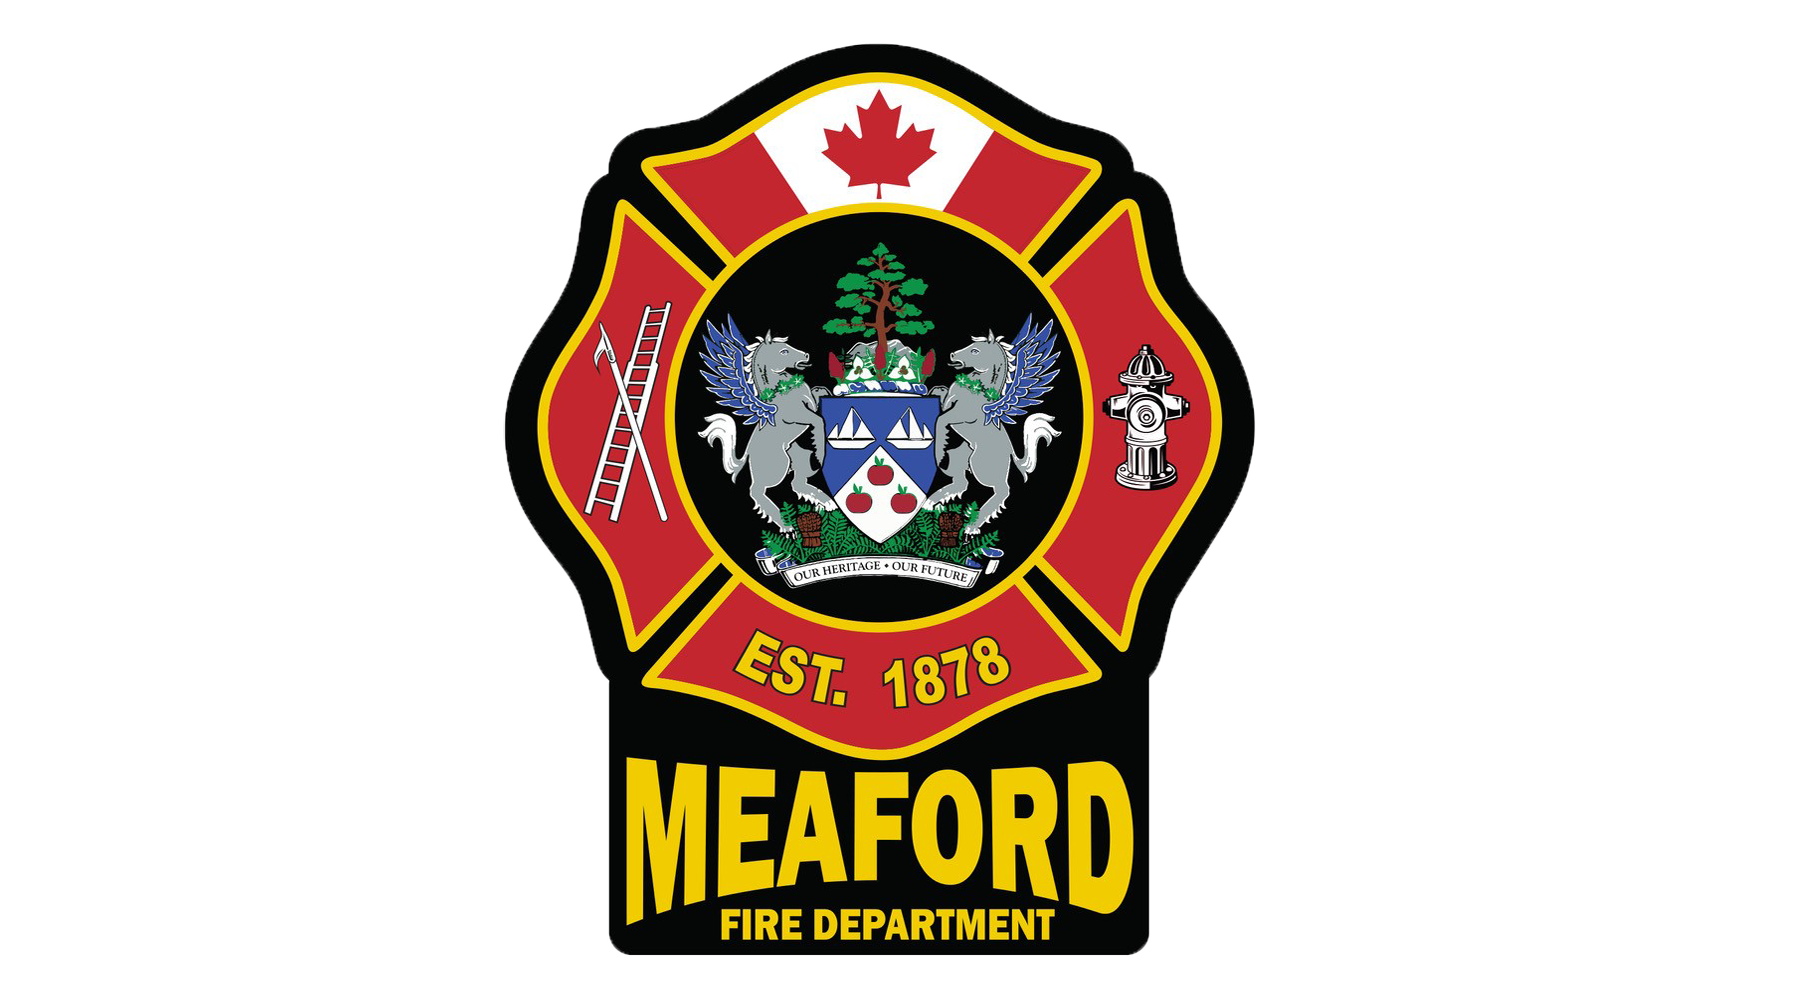 Meaford Fire Department